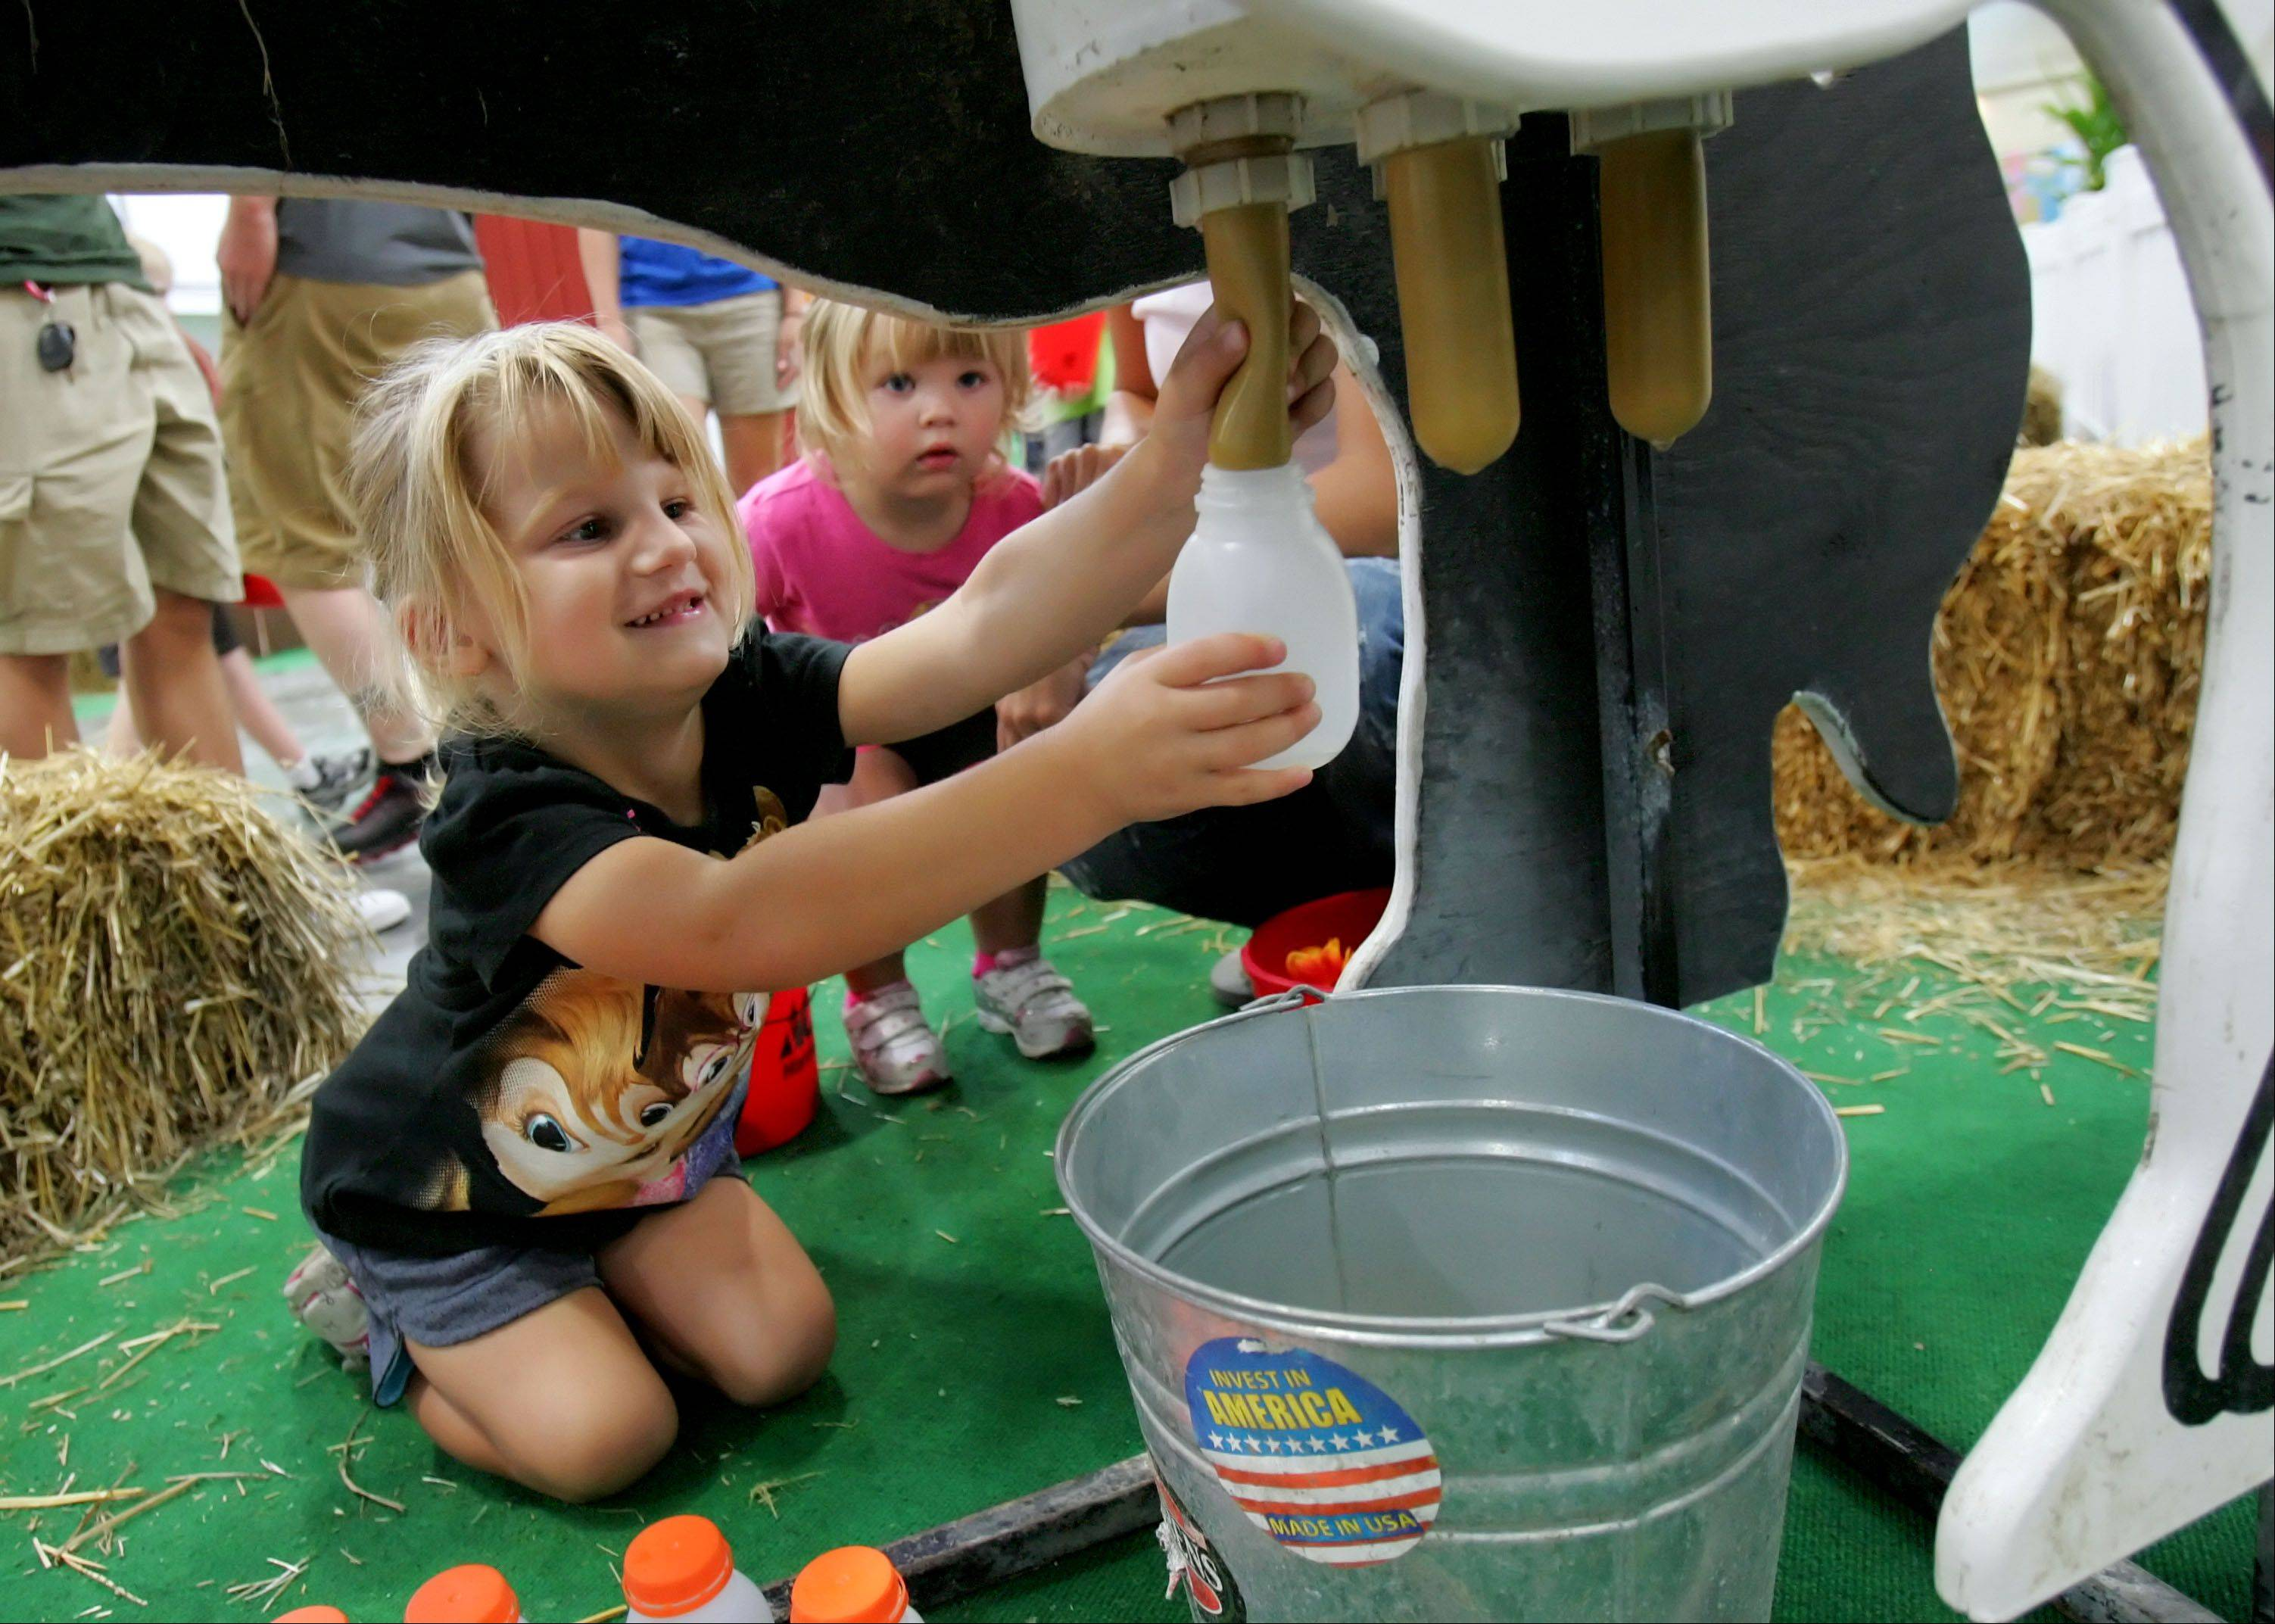 3-year-old Jordyn Davis of Grayslake, left, milks a pretend cow at the Lake County Farm Bureau's new Ag Adventure exhibit at the Lake County Fair Thursday morning in Grayslake.